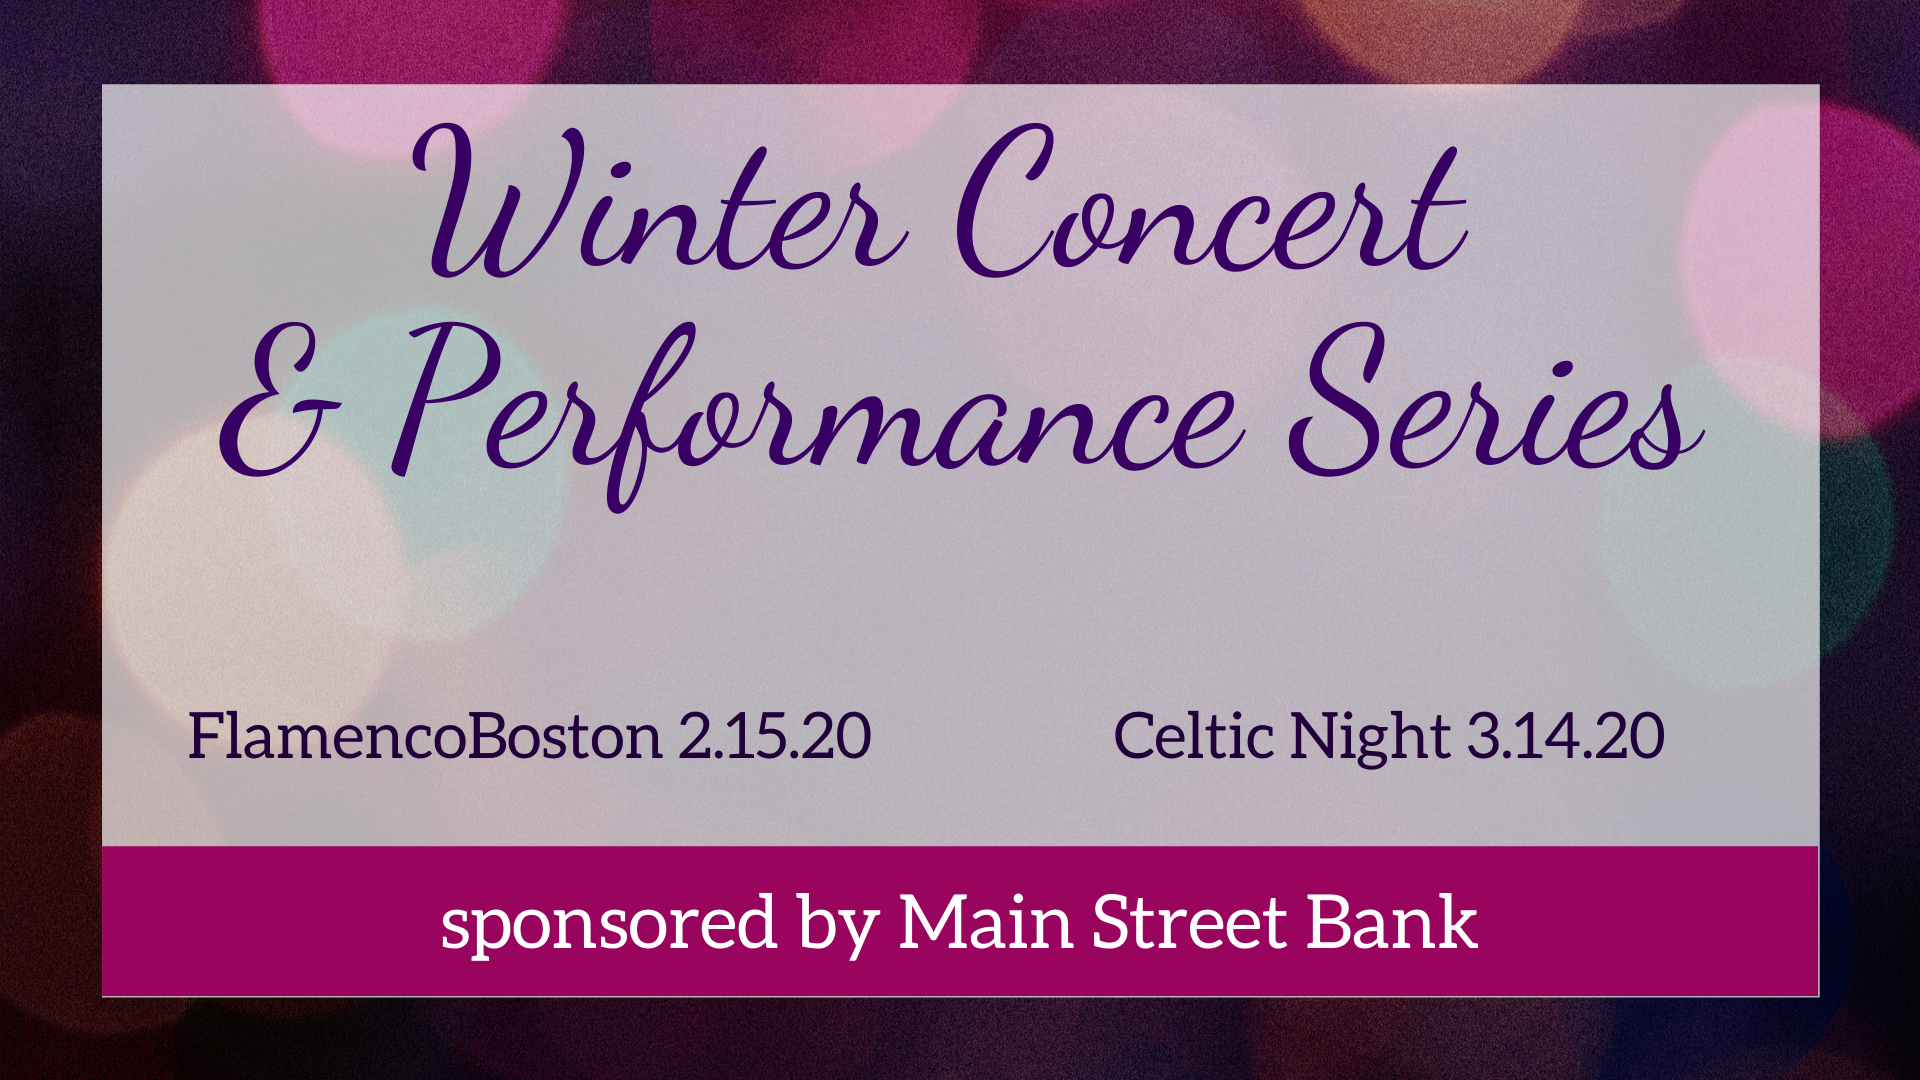 On Sale Now: Winter Concert & Performance Series